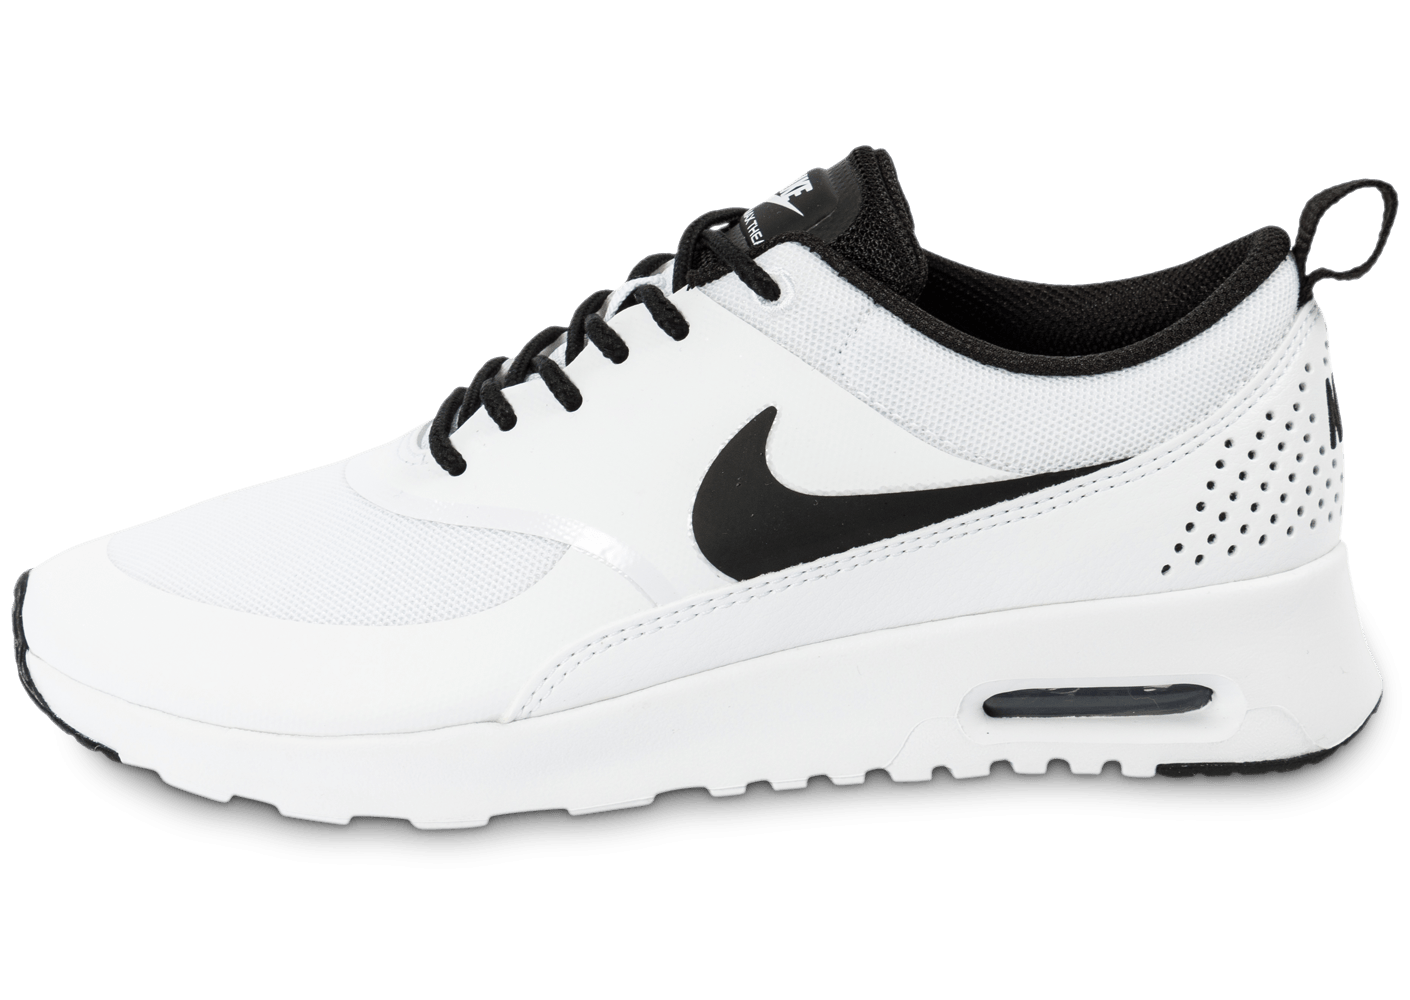 nike air max thea femme rose et blanche